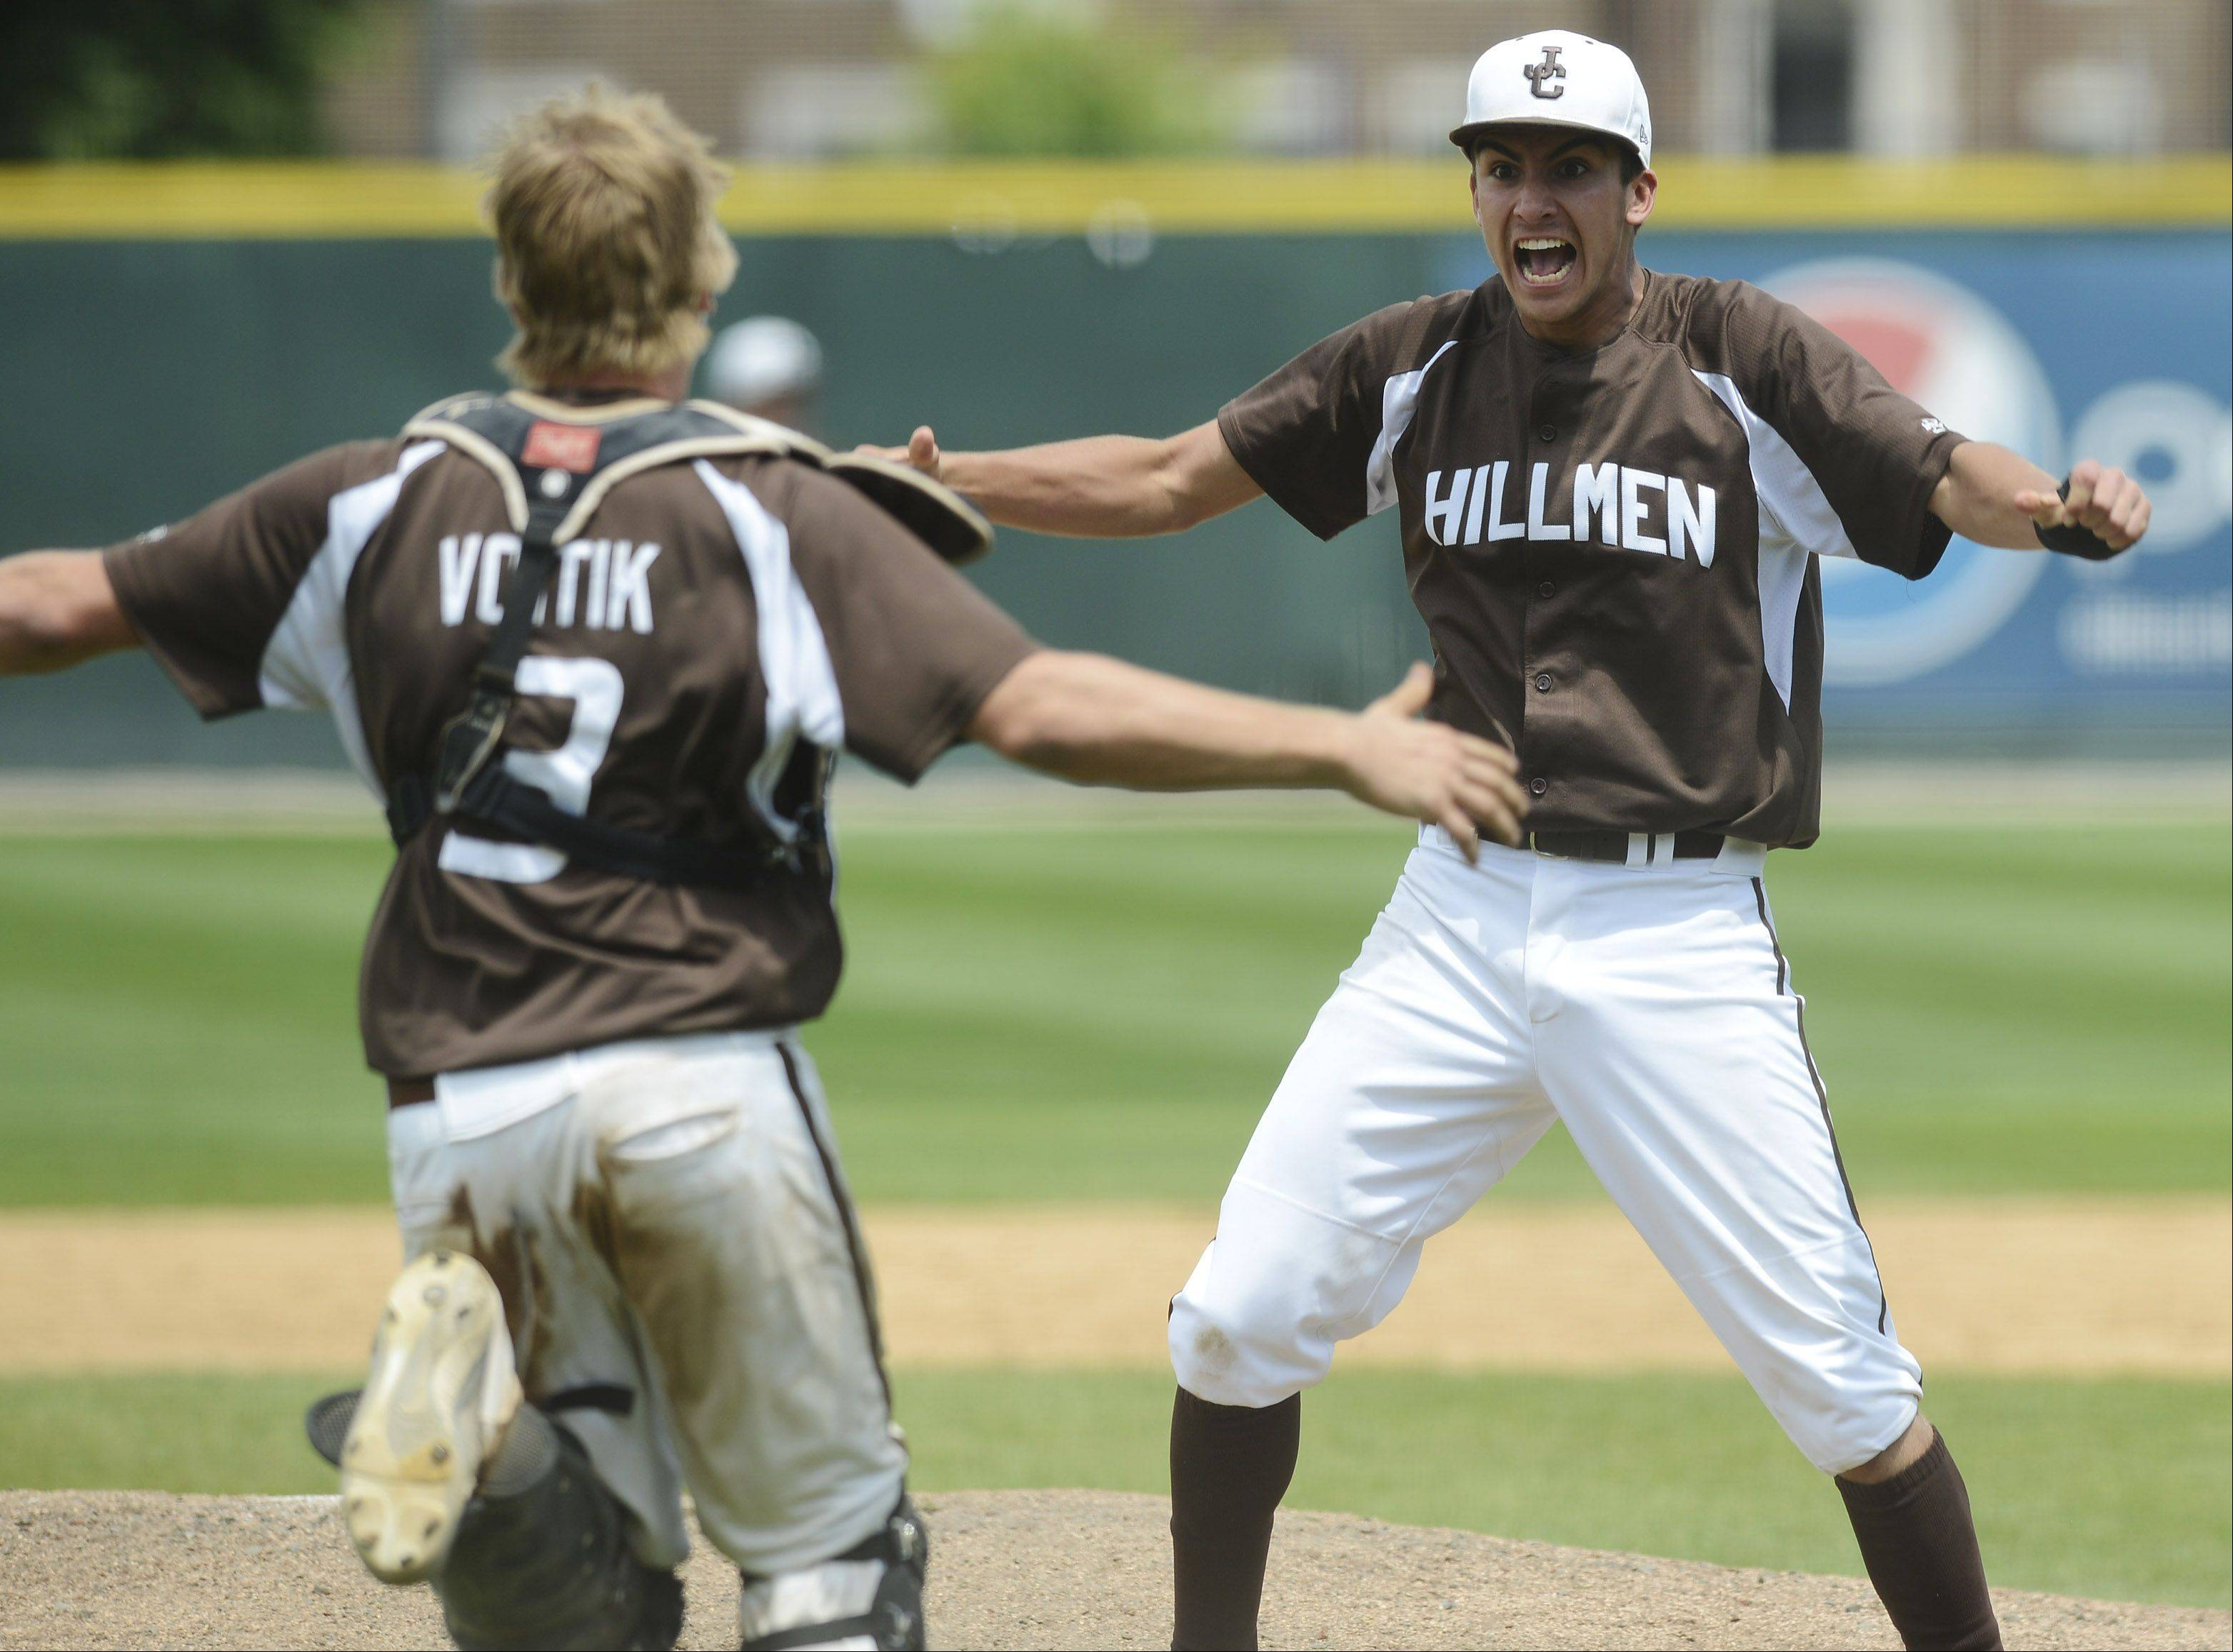 Joliet Catholic pitcher Nick Dalesandro celebrates with catcher Alex Voitik after getting the final out of his team's victory over St. Francis during the Class 3A state baseball championship game at Silver Cross Field in Joliet Saturday.